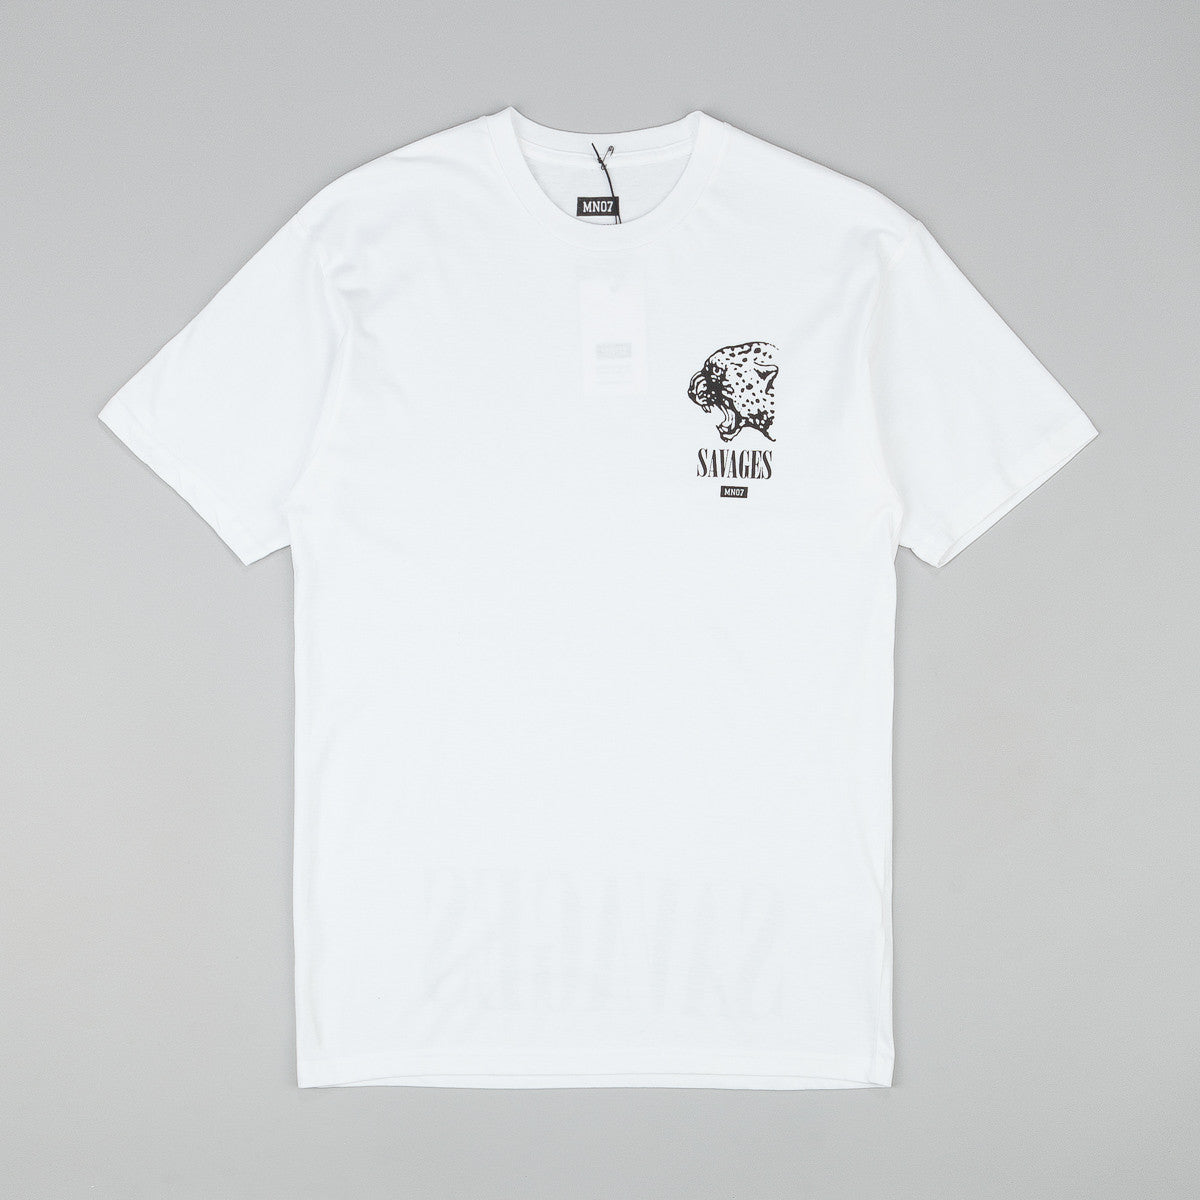 MN07 Savages III T-Shirt